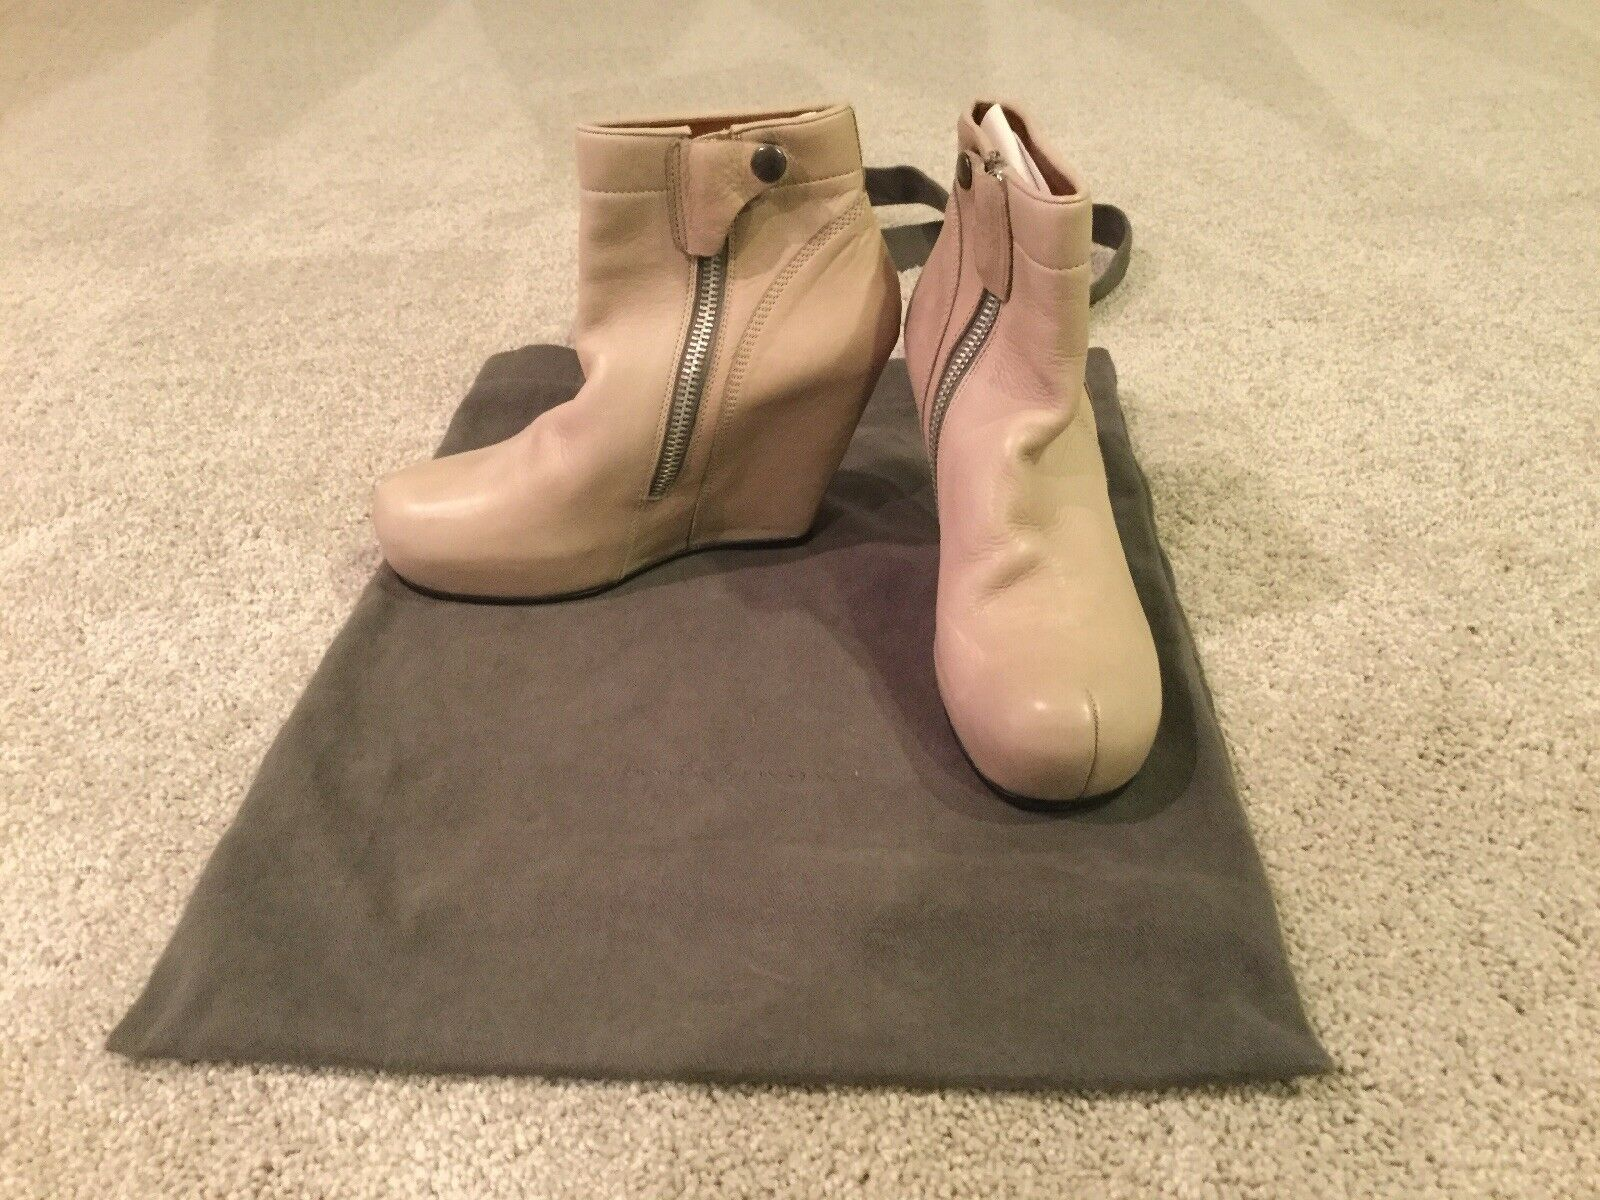 Beige Rick Owens Womens Leather Booties Size 7.5